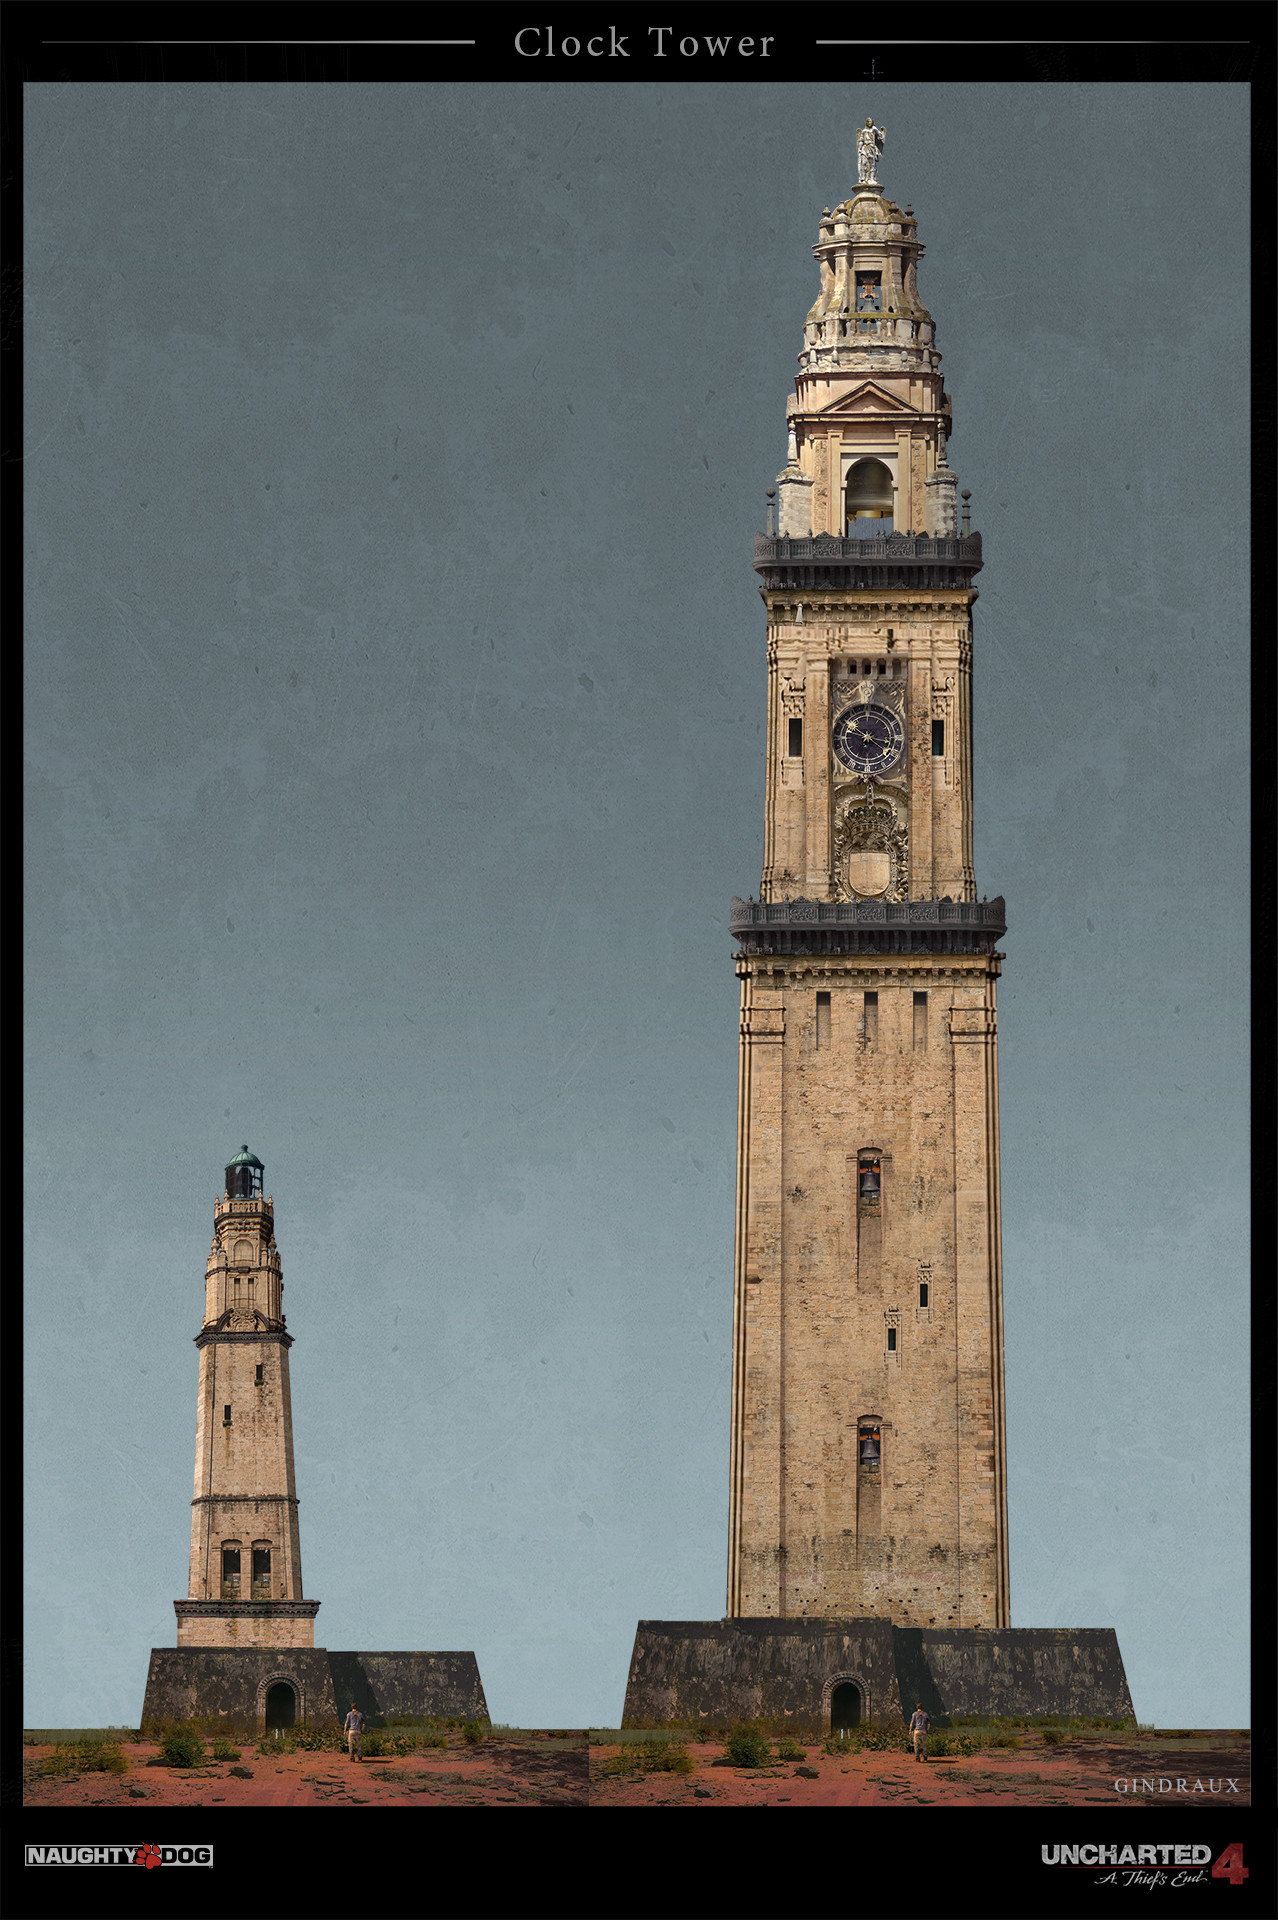 Nick gindraux madagascar clock tower post